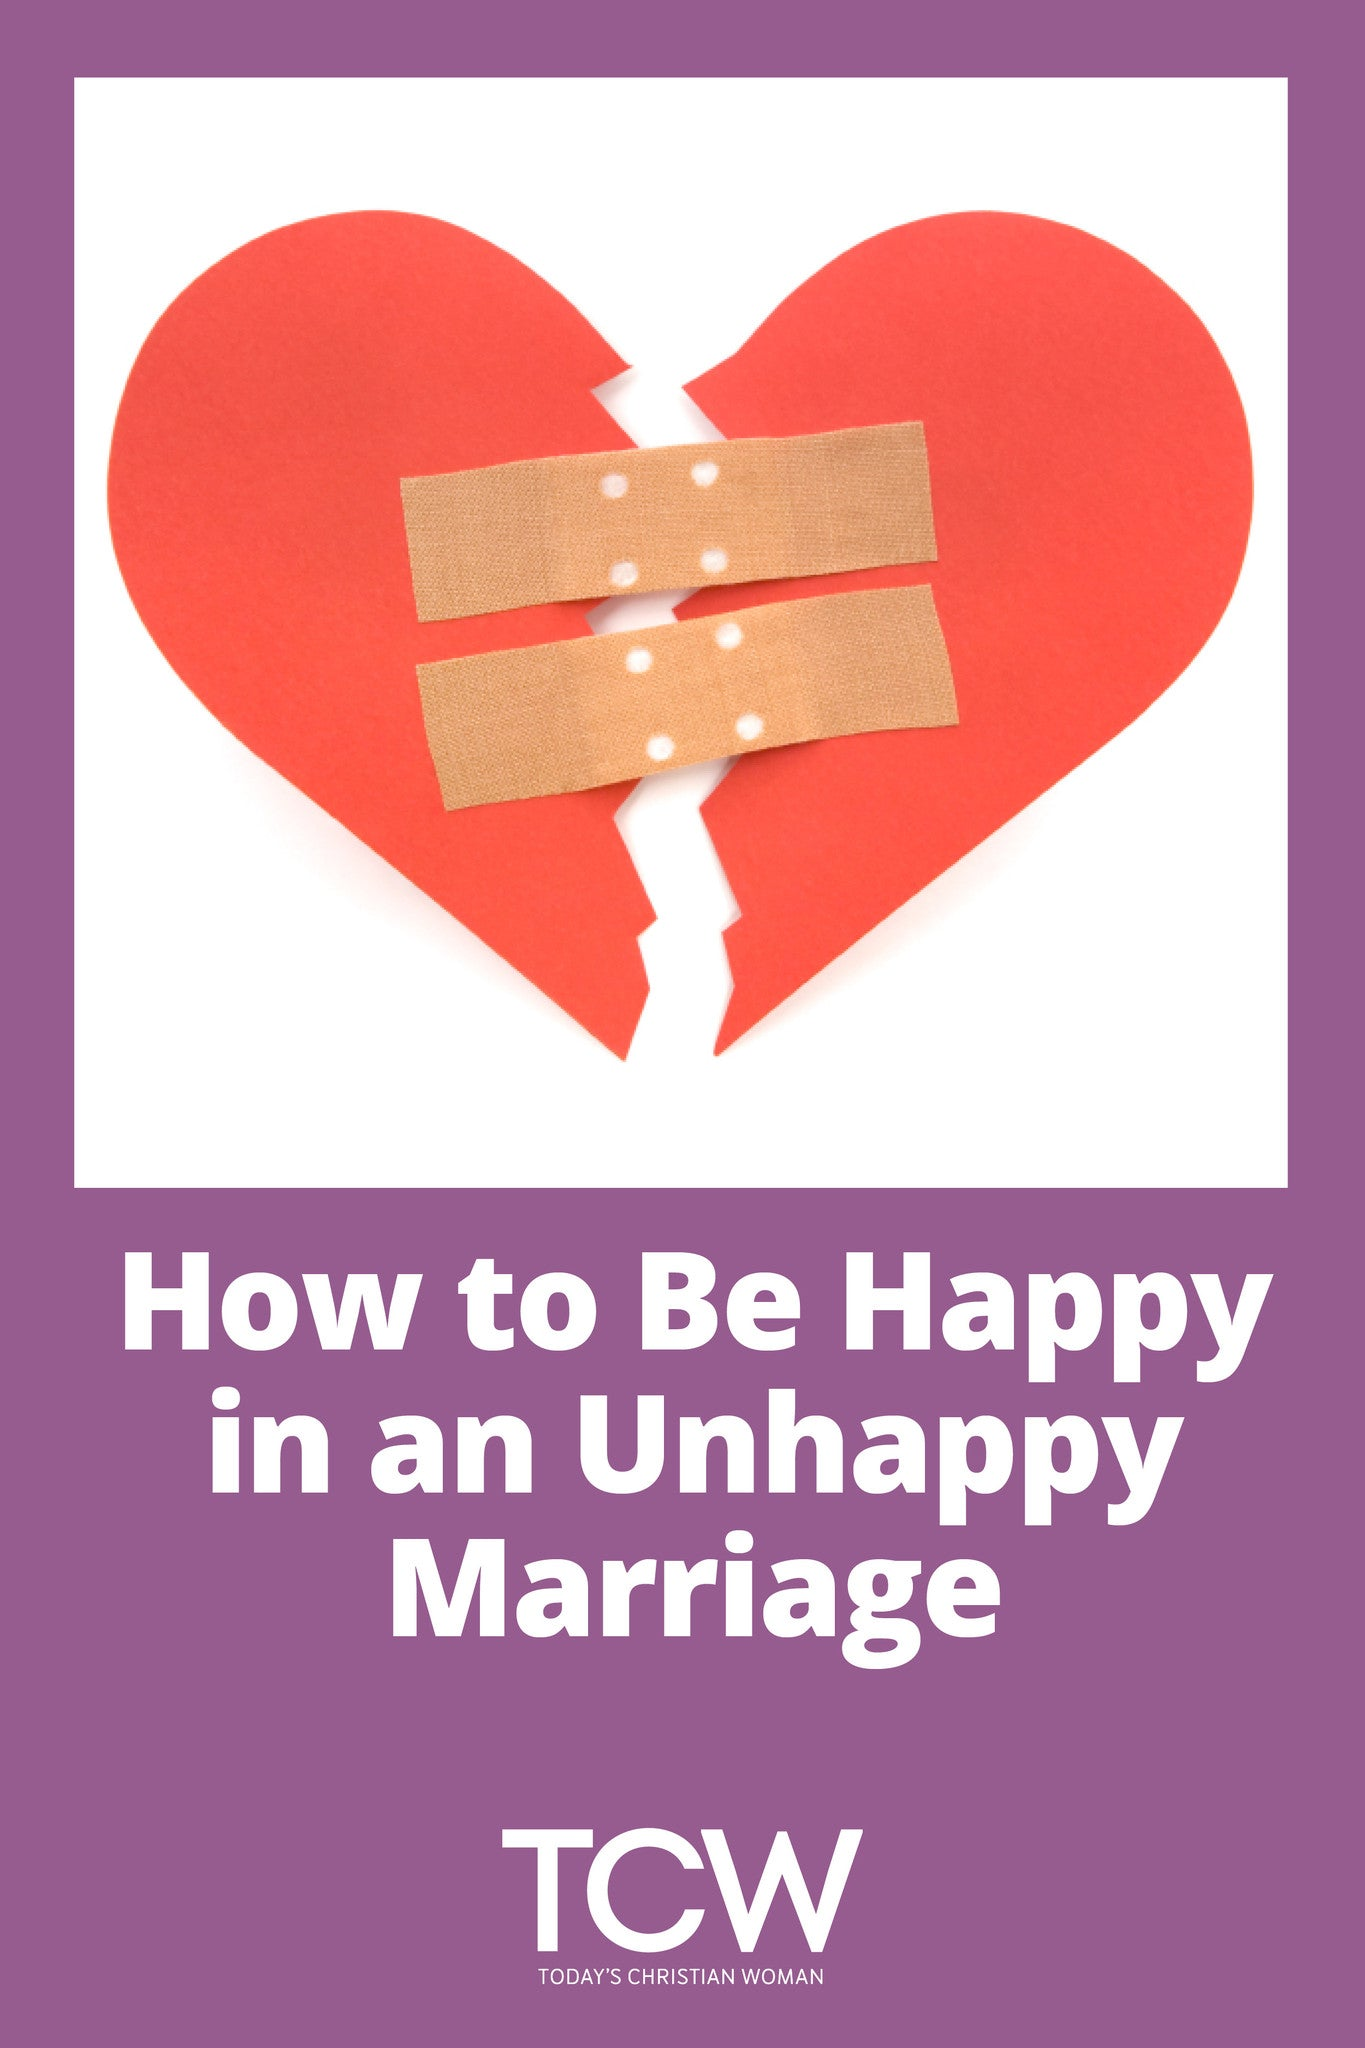 Christian married unhappy dating